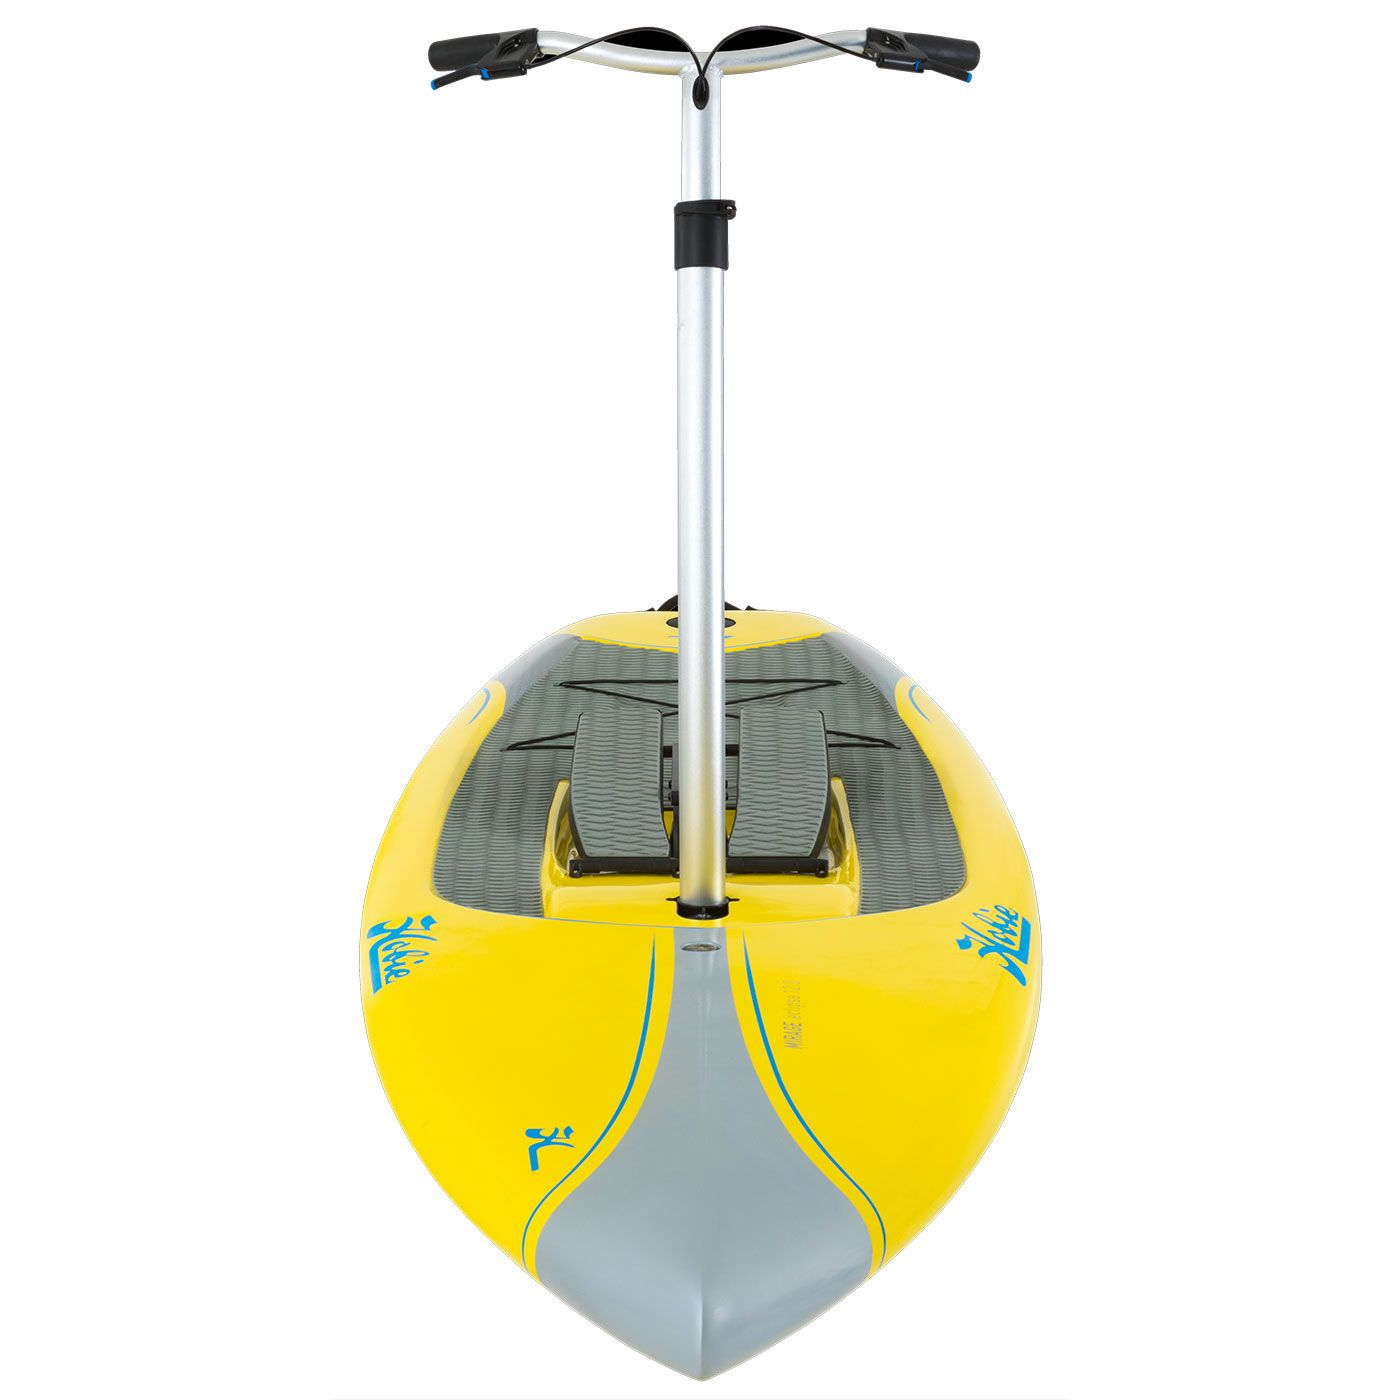 Hobie Mirage Eclipse 10 5 Stand Up Paddleboard Pedal Drive Sup Hobie Mirage Paddle Boarding Standup Paddle